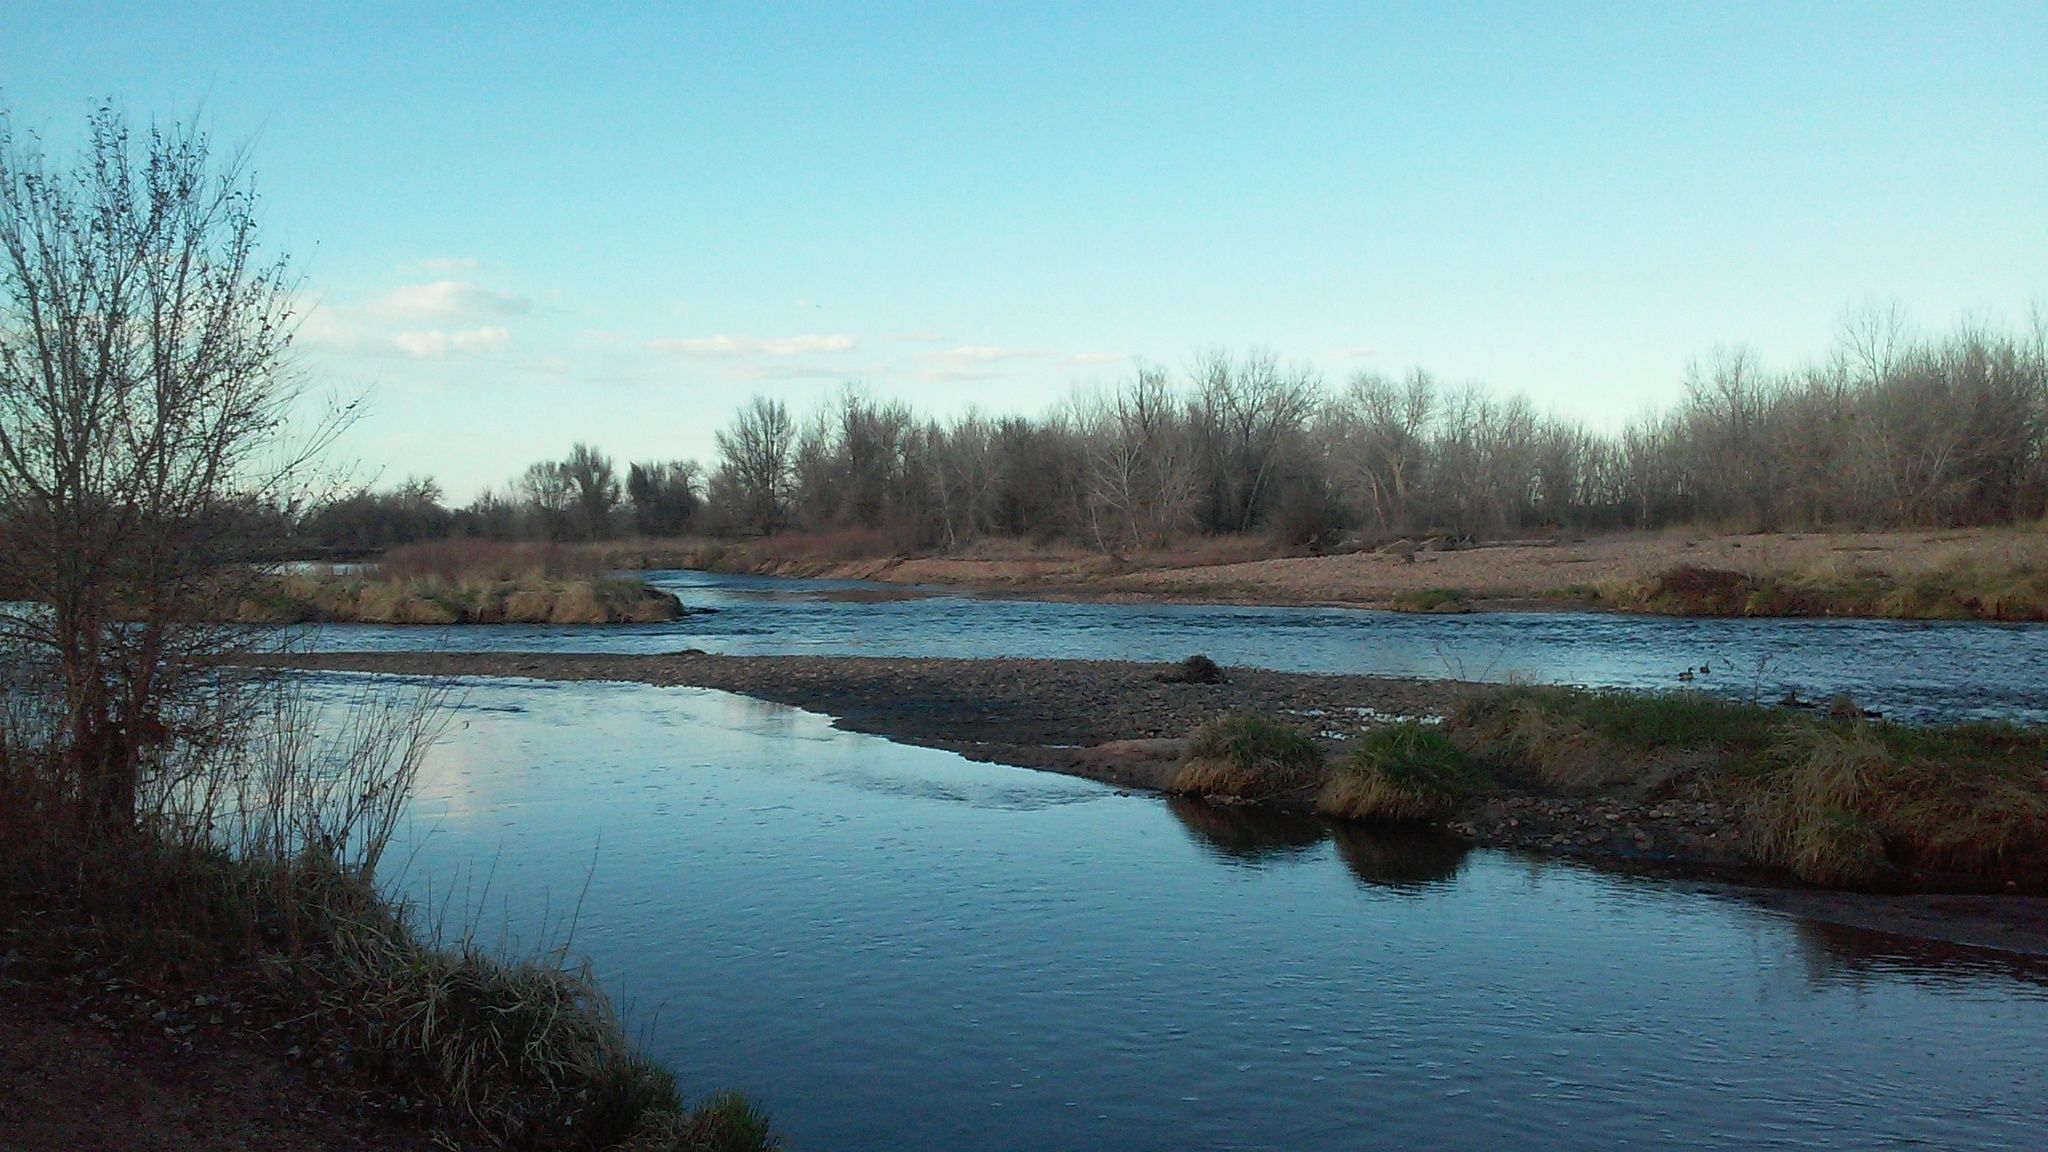 Platte River Greenway Trail